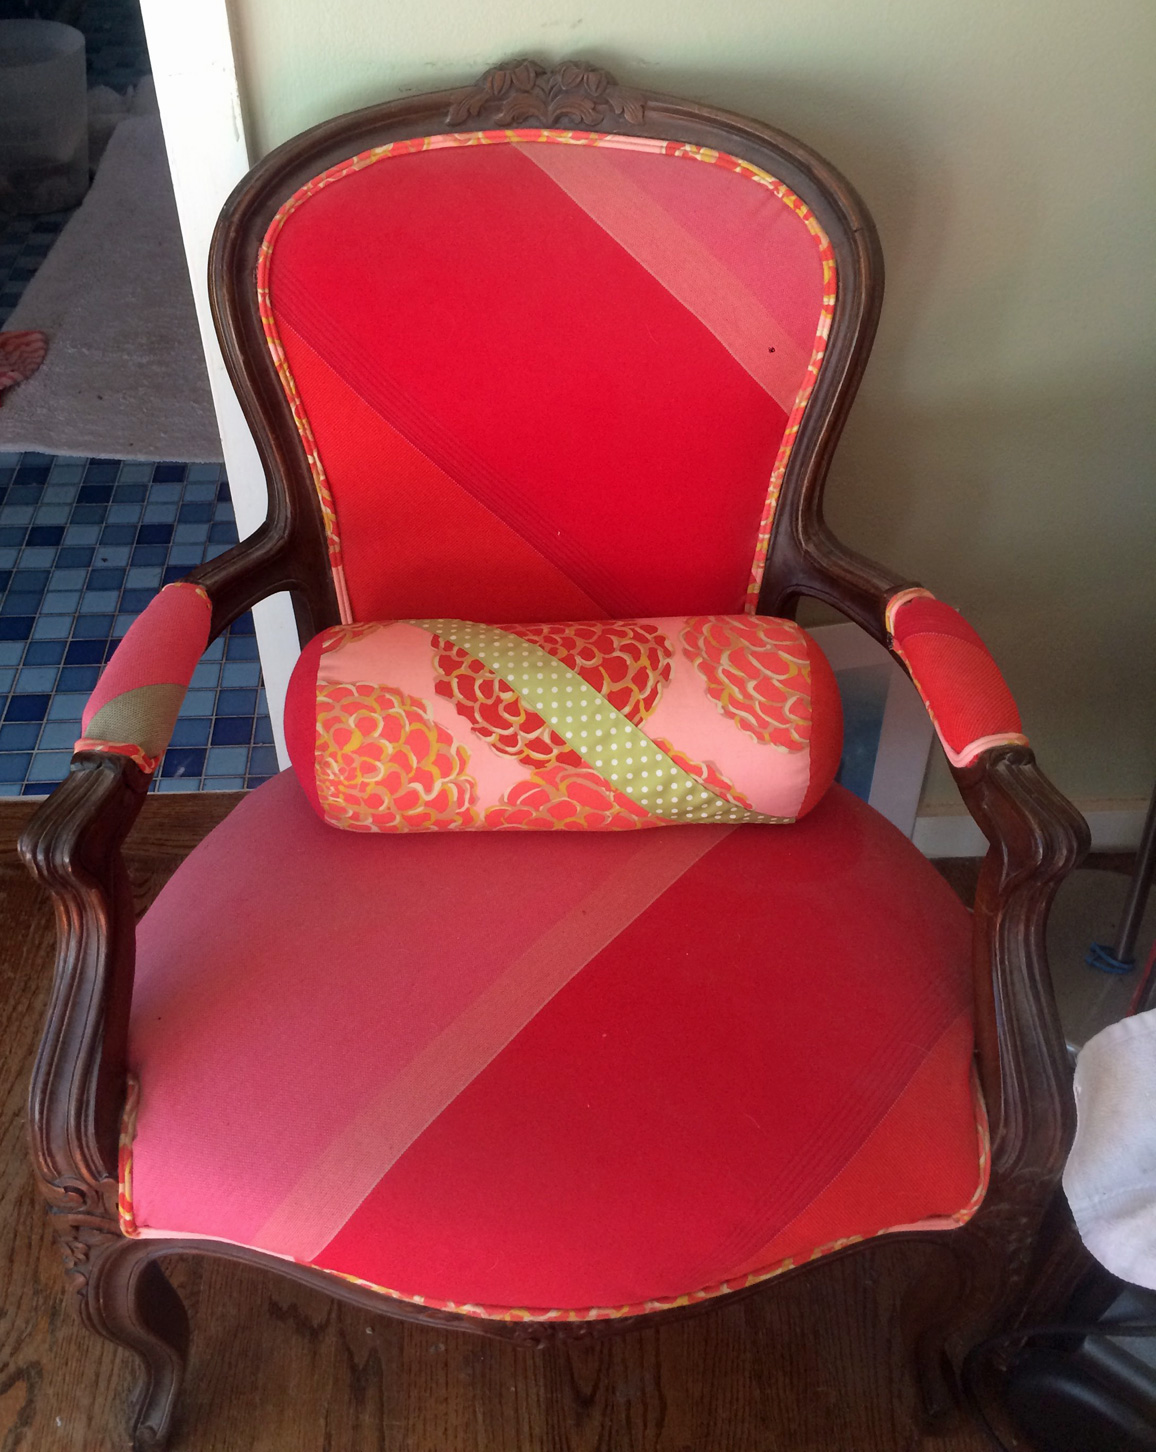 susan-chair-upholstered-small.jpg